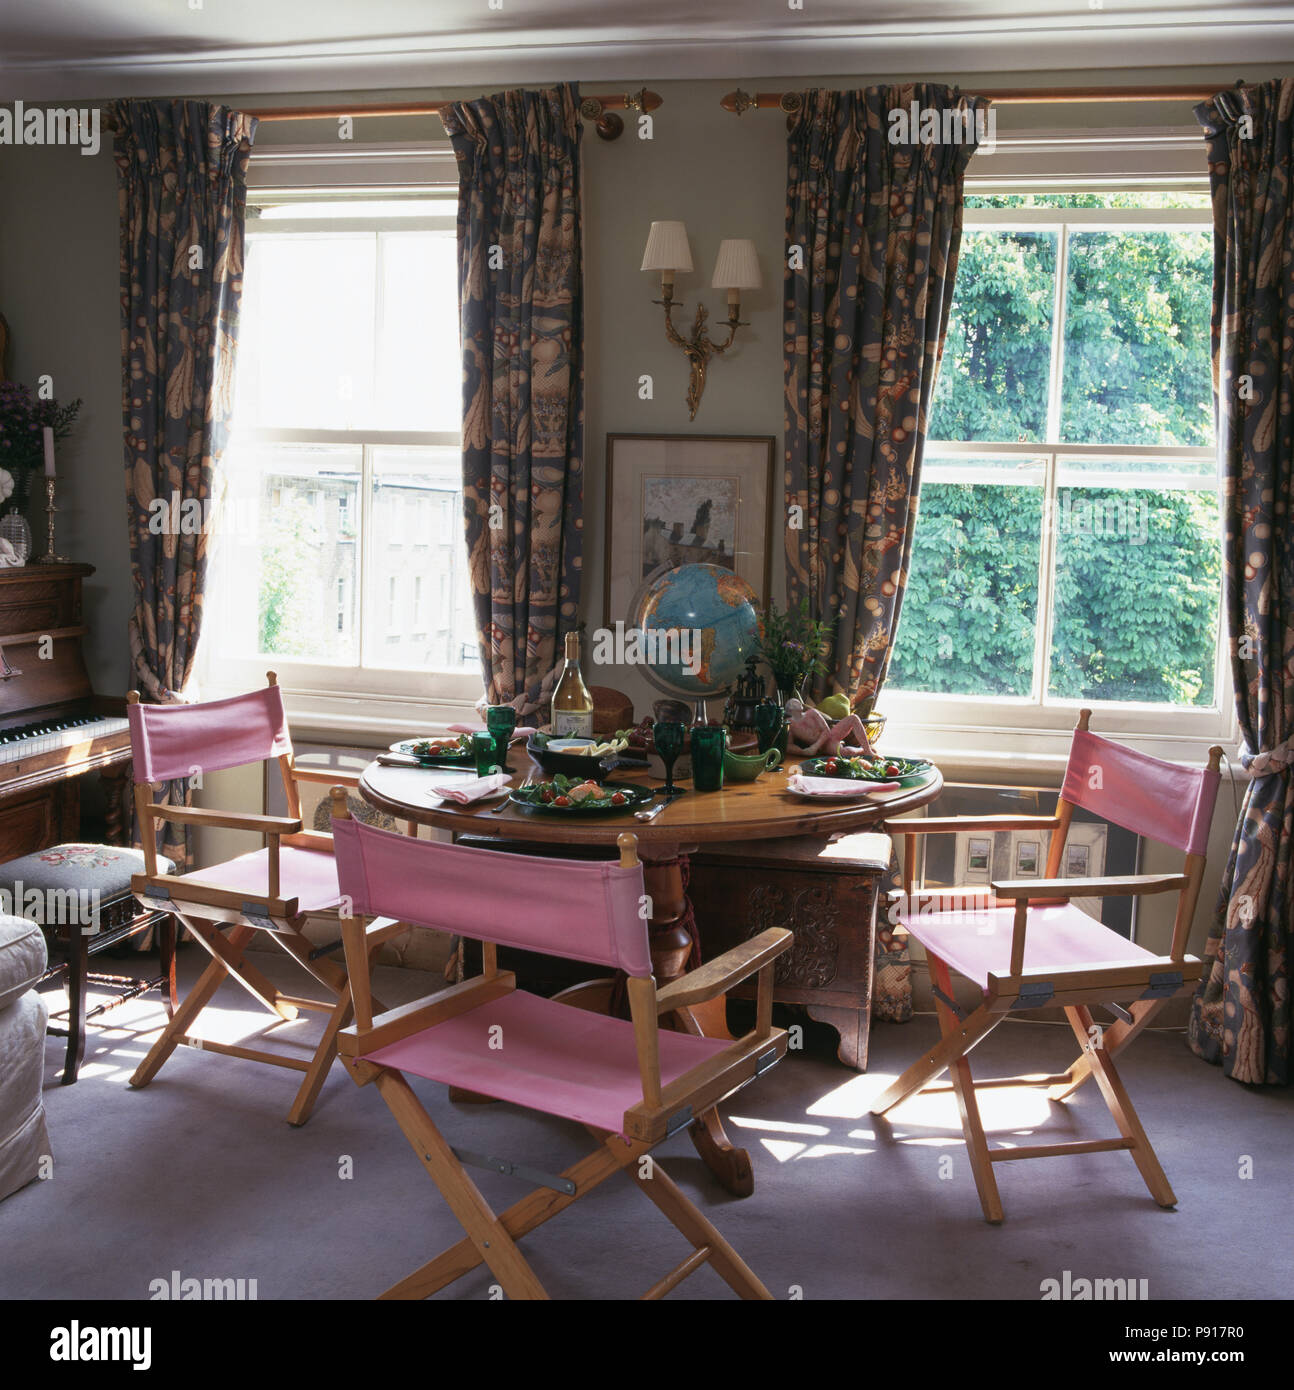 Pink Director S Chairs And Circular Pine Table In Front Of Windows With Floral Curtains In Apartment Dining Room Stock Photo Alamy